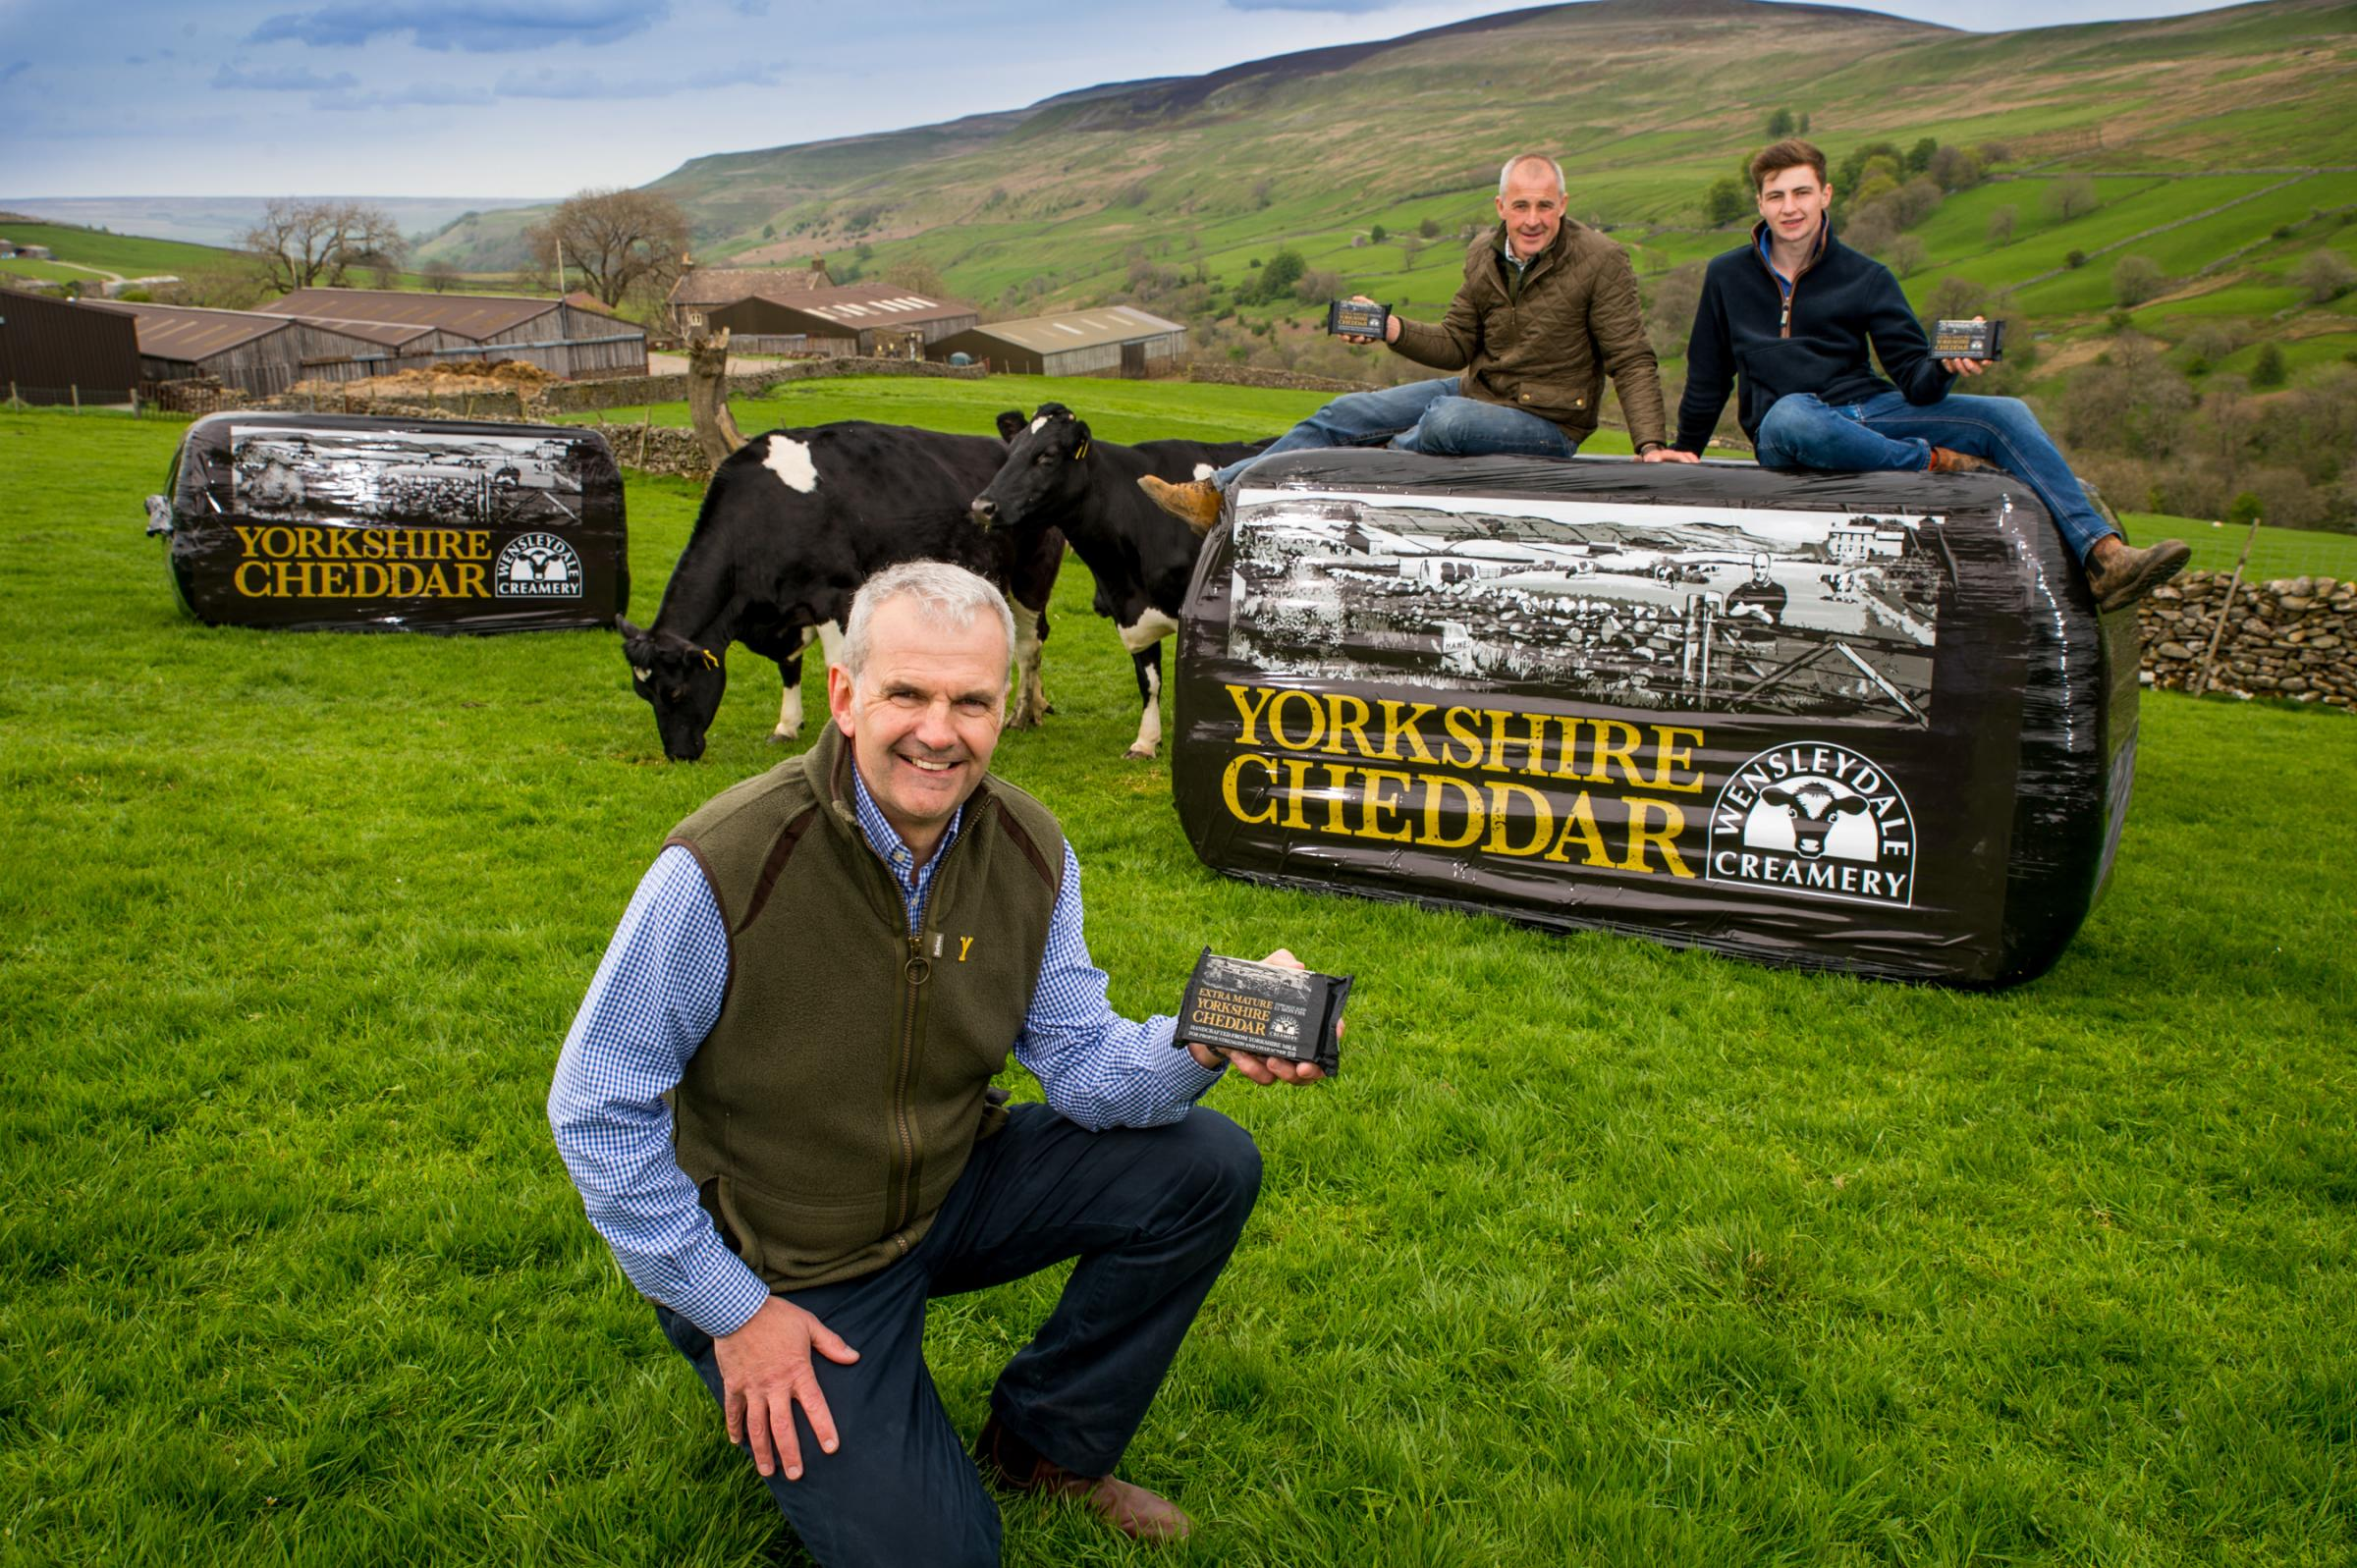 Wensleydale Creamery managing director David Hartley and Wensleydale dairy farmer Robert Tiplady and son. Picture: Simon Dewhurst